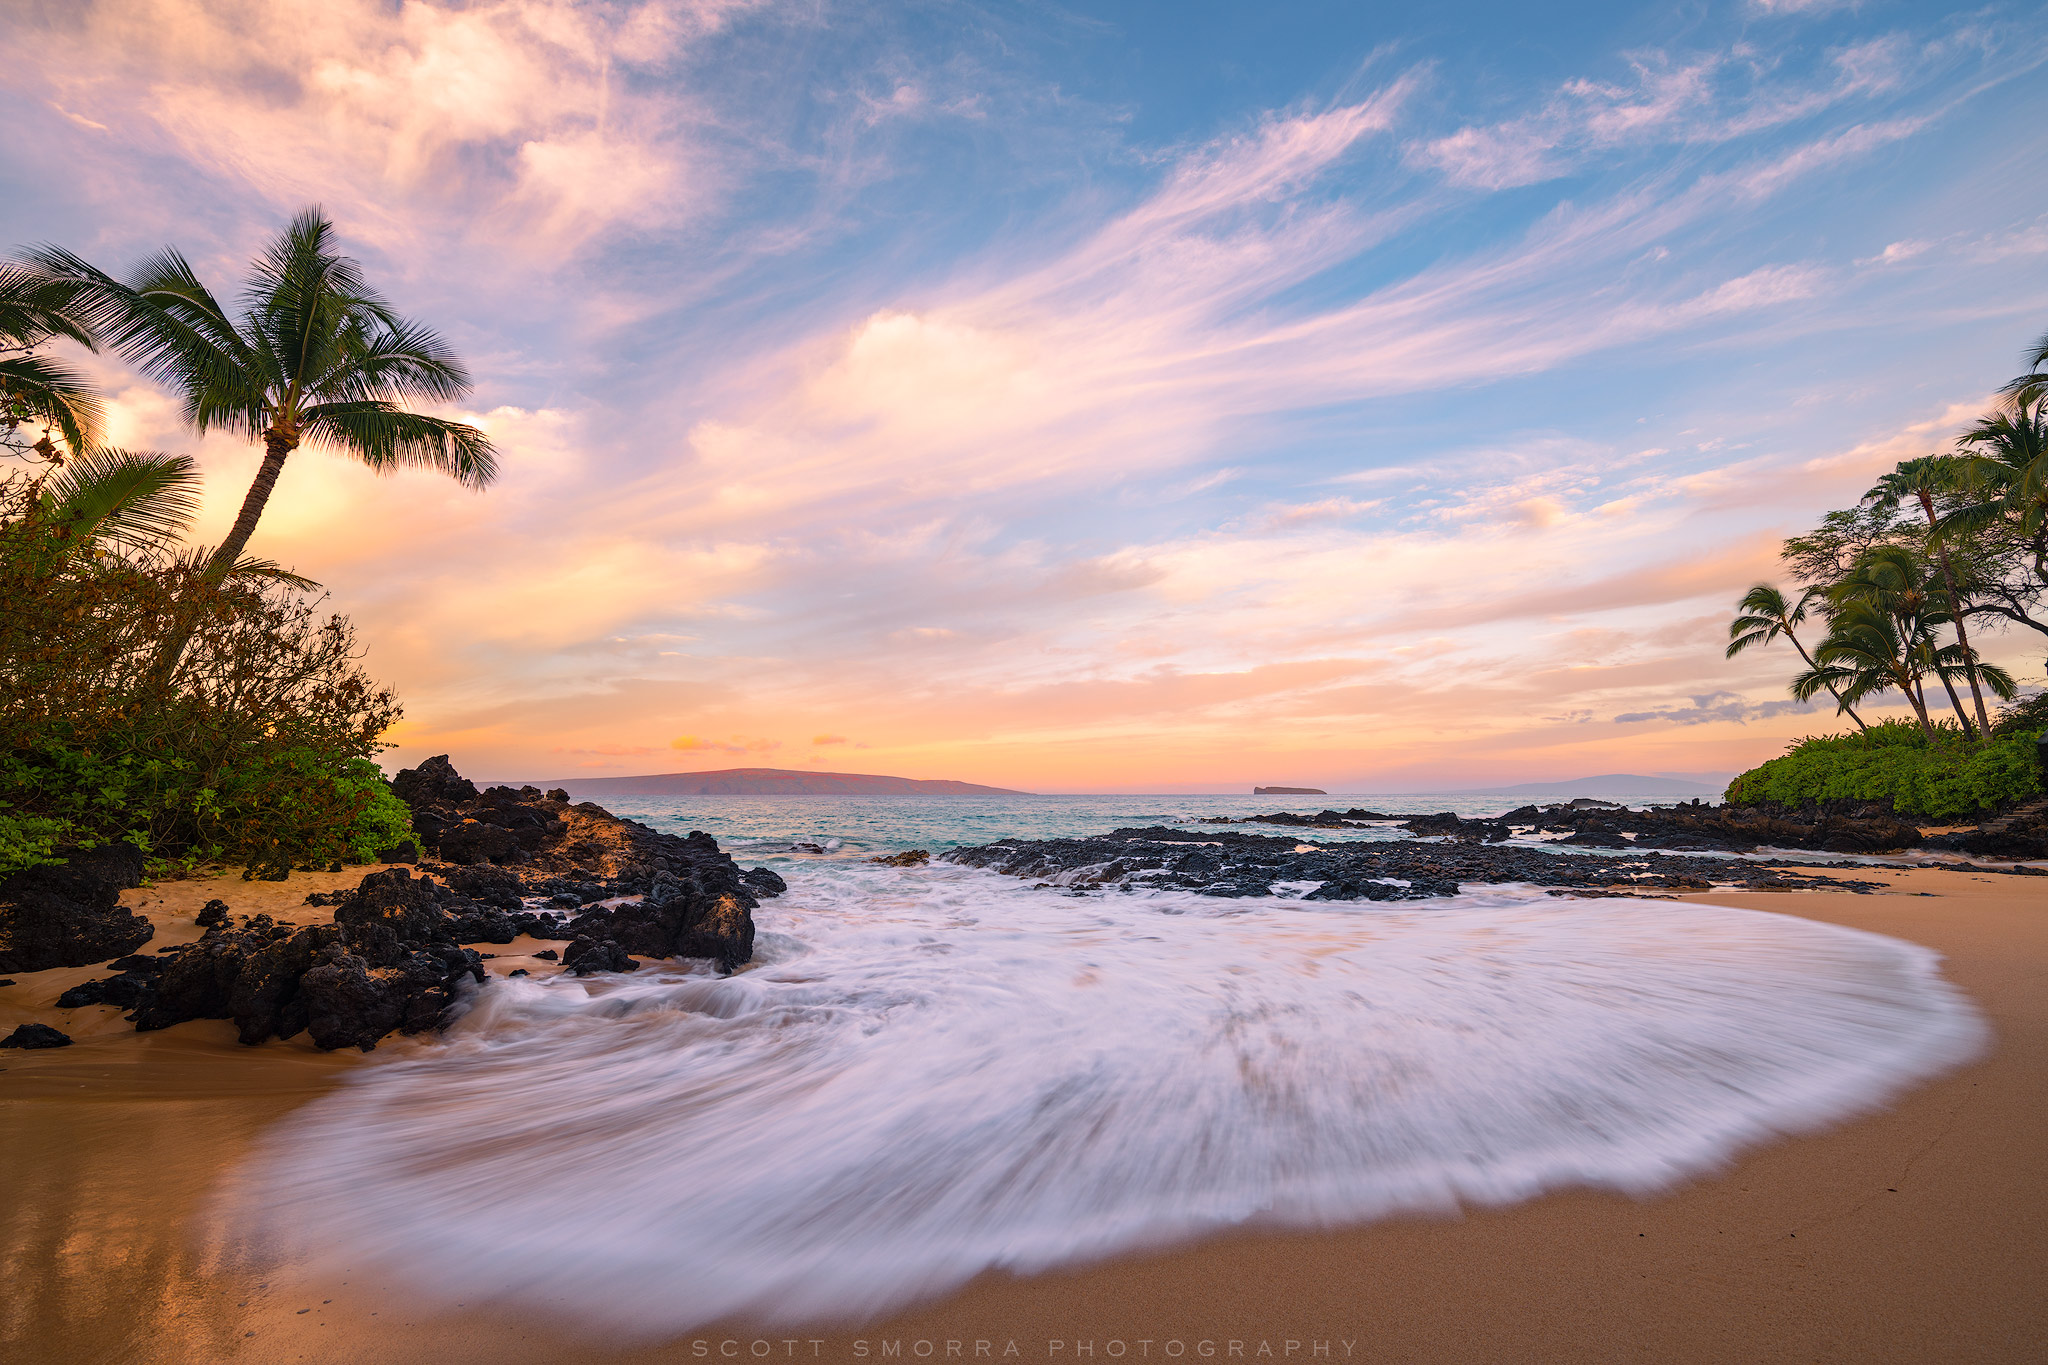 Fine Art Limited Edition of 100 - Sunrise light and coconut palm trees at a small cove on the island of Maui, Hawaii.  This was...